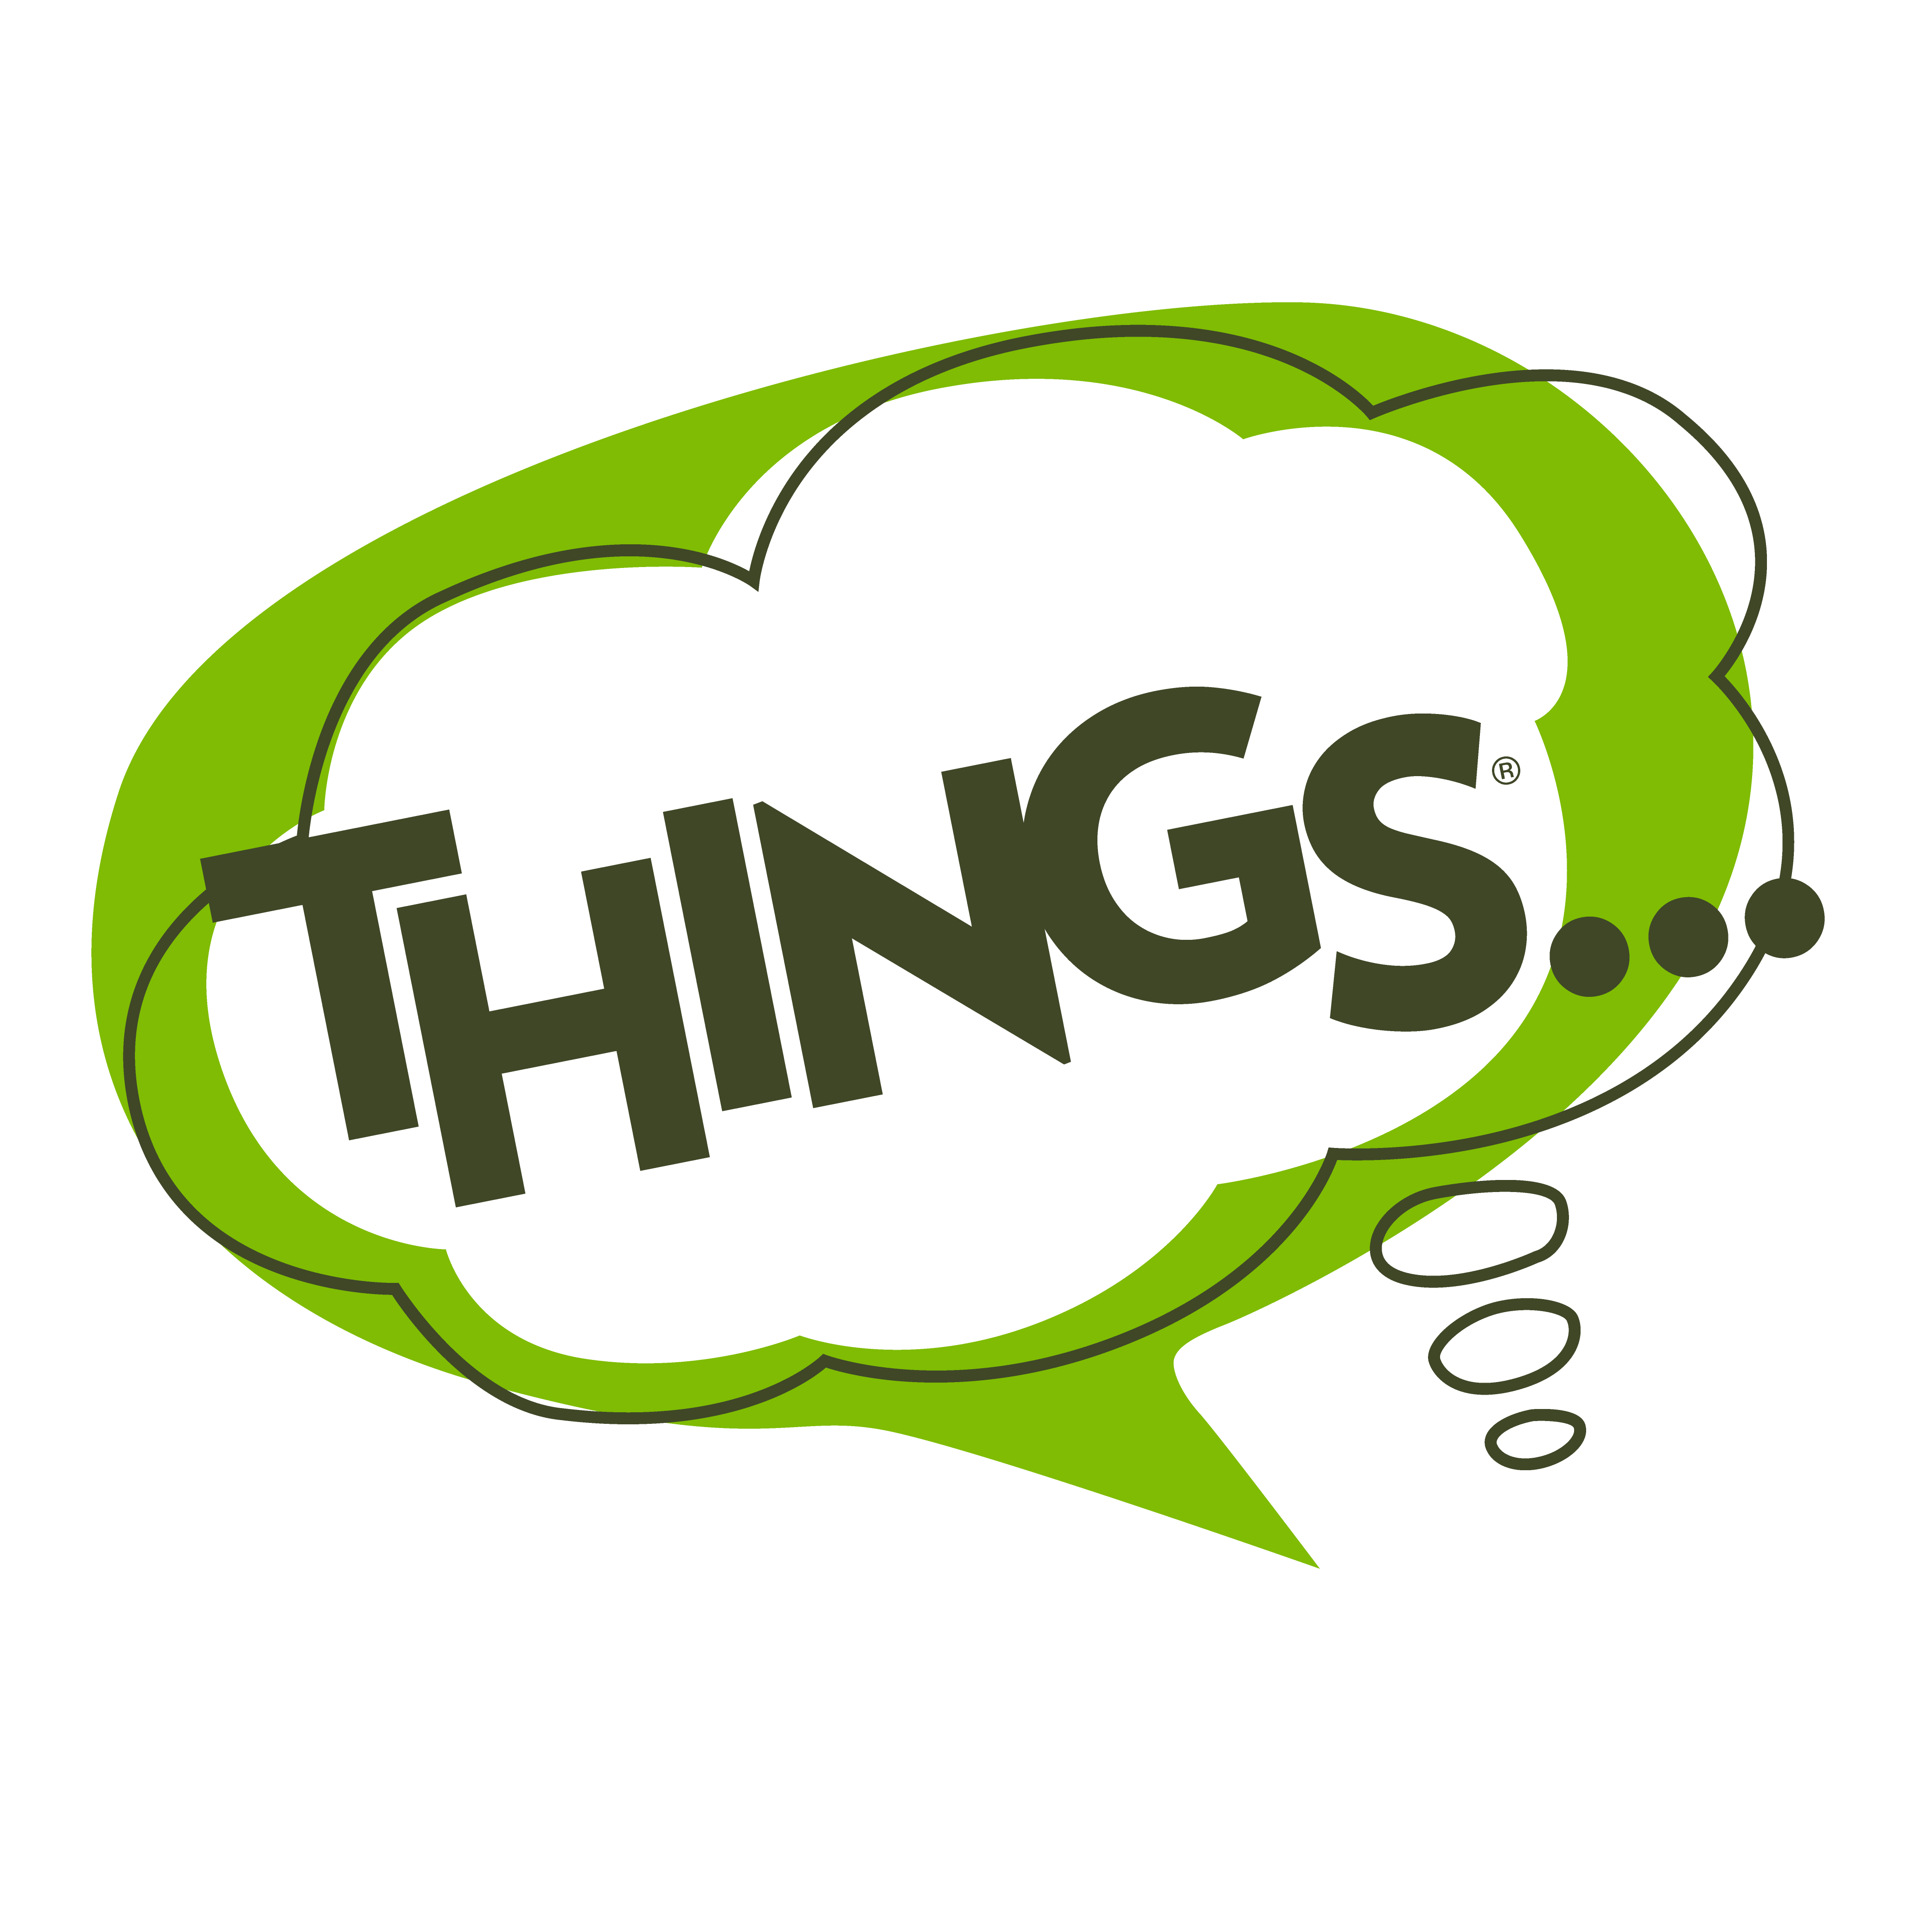 THINGS... ® logo